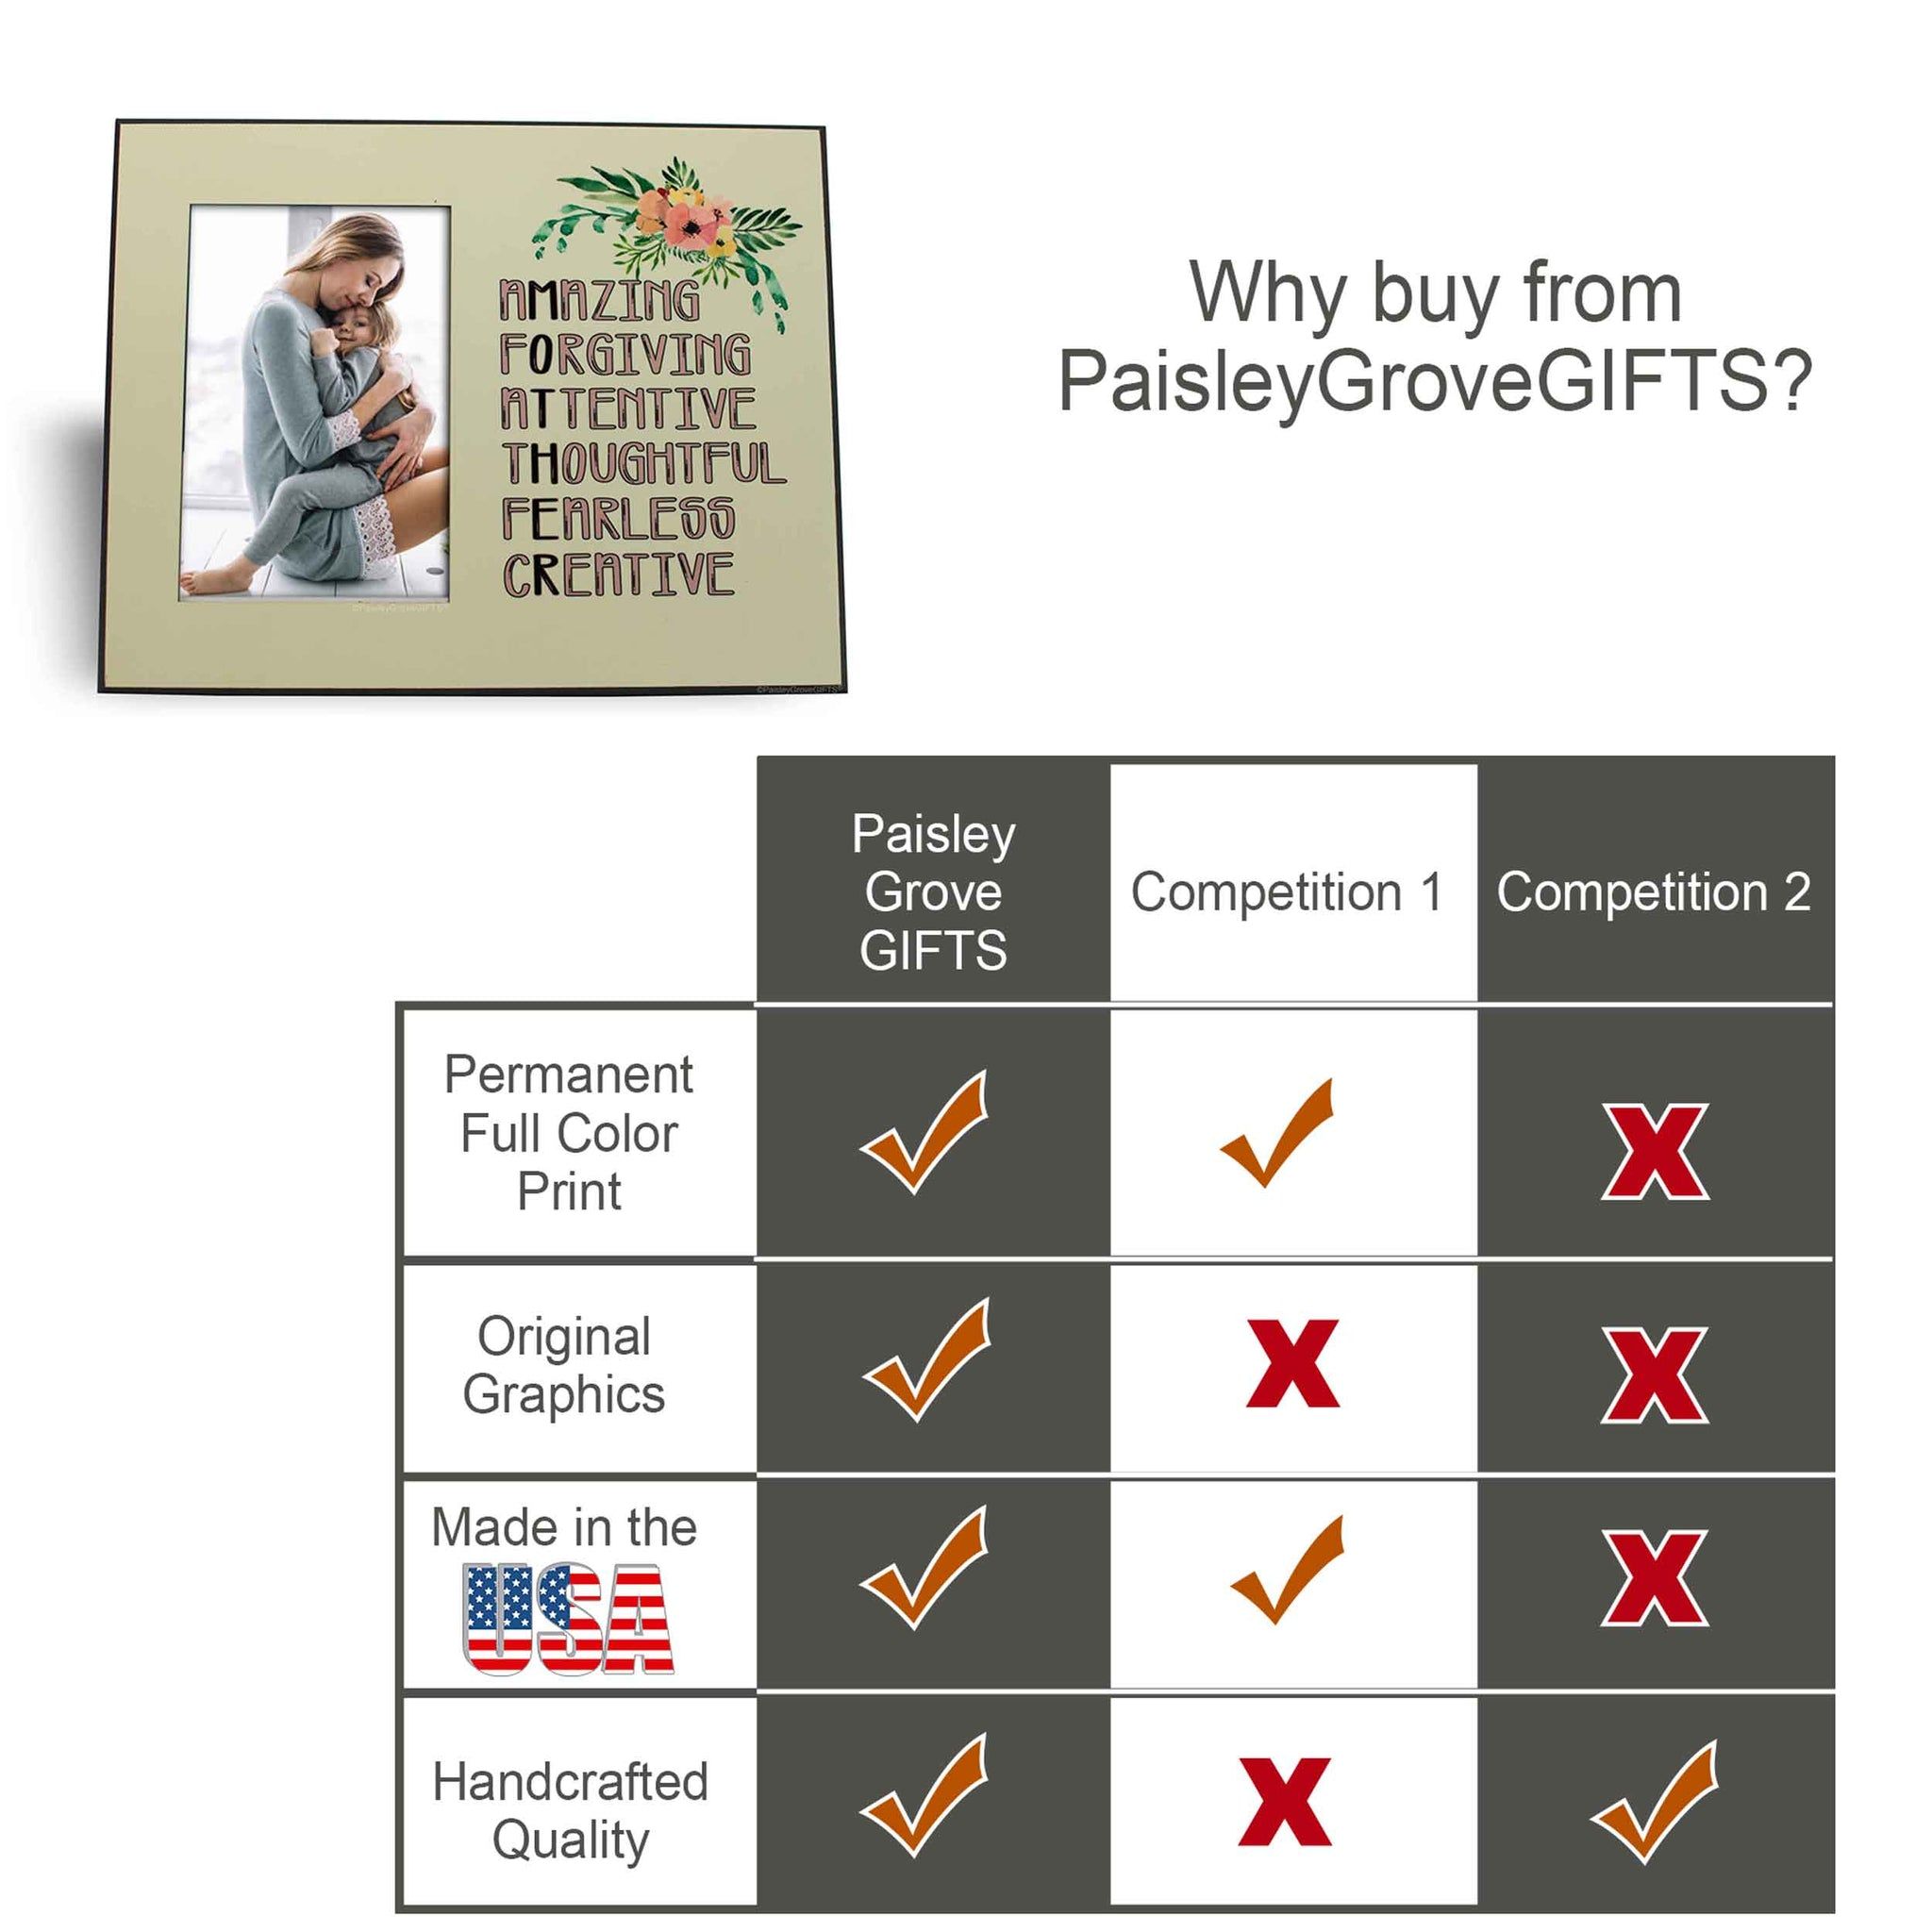 CopyrightPaisleyGroveGIFTS S202b Unique gift for moms and grandmothers high quality comparison chart from Paisleygrovegifts